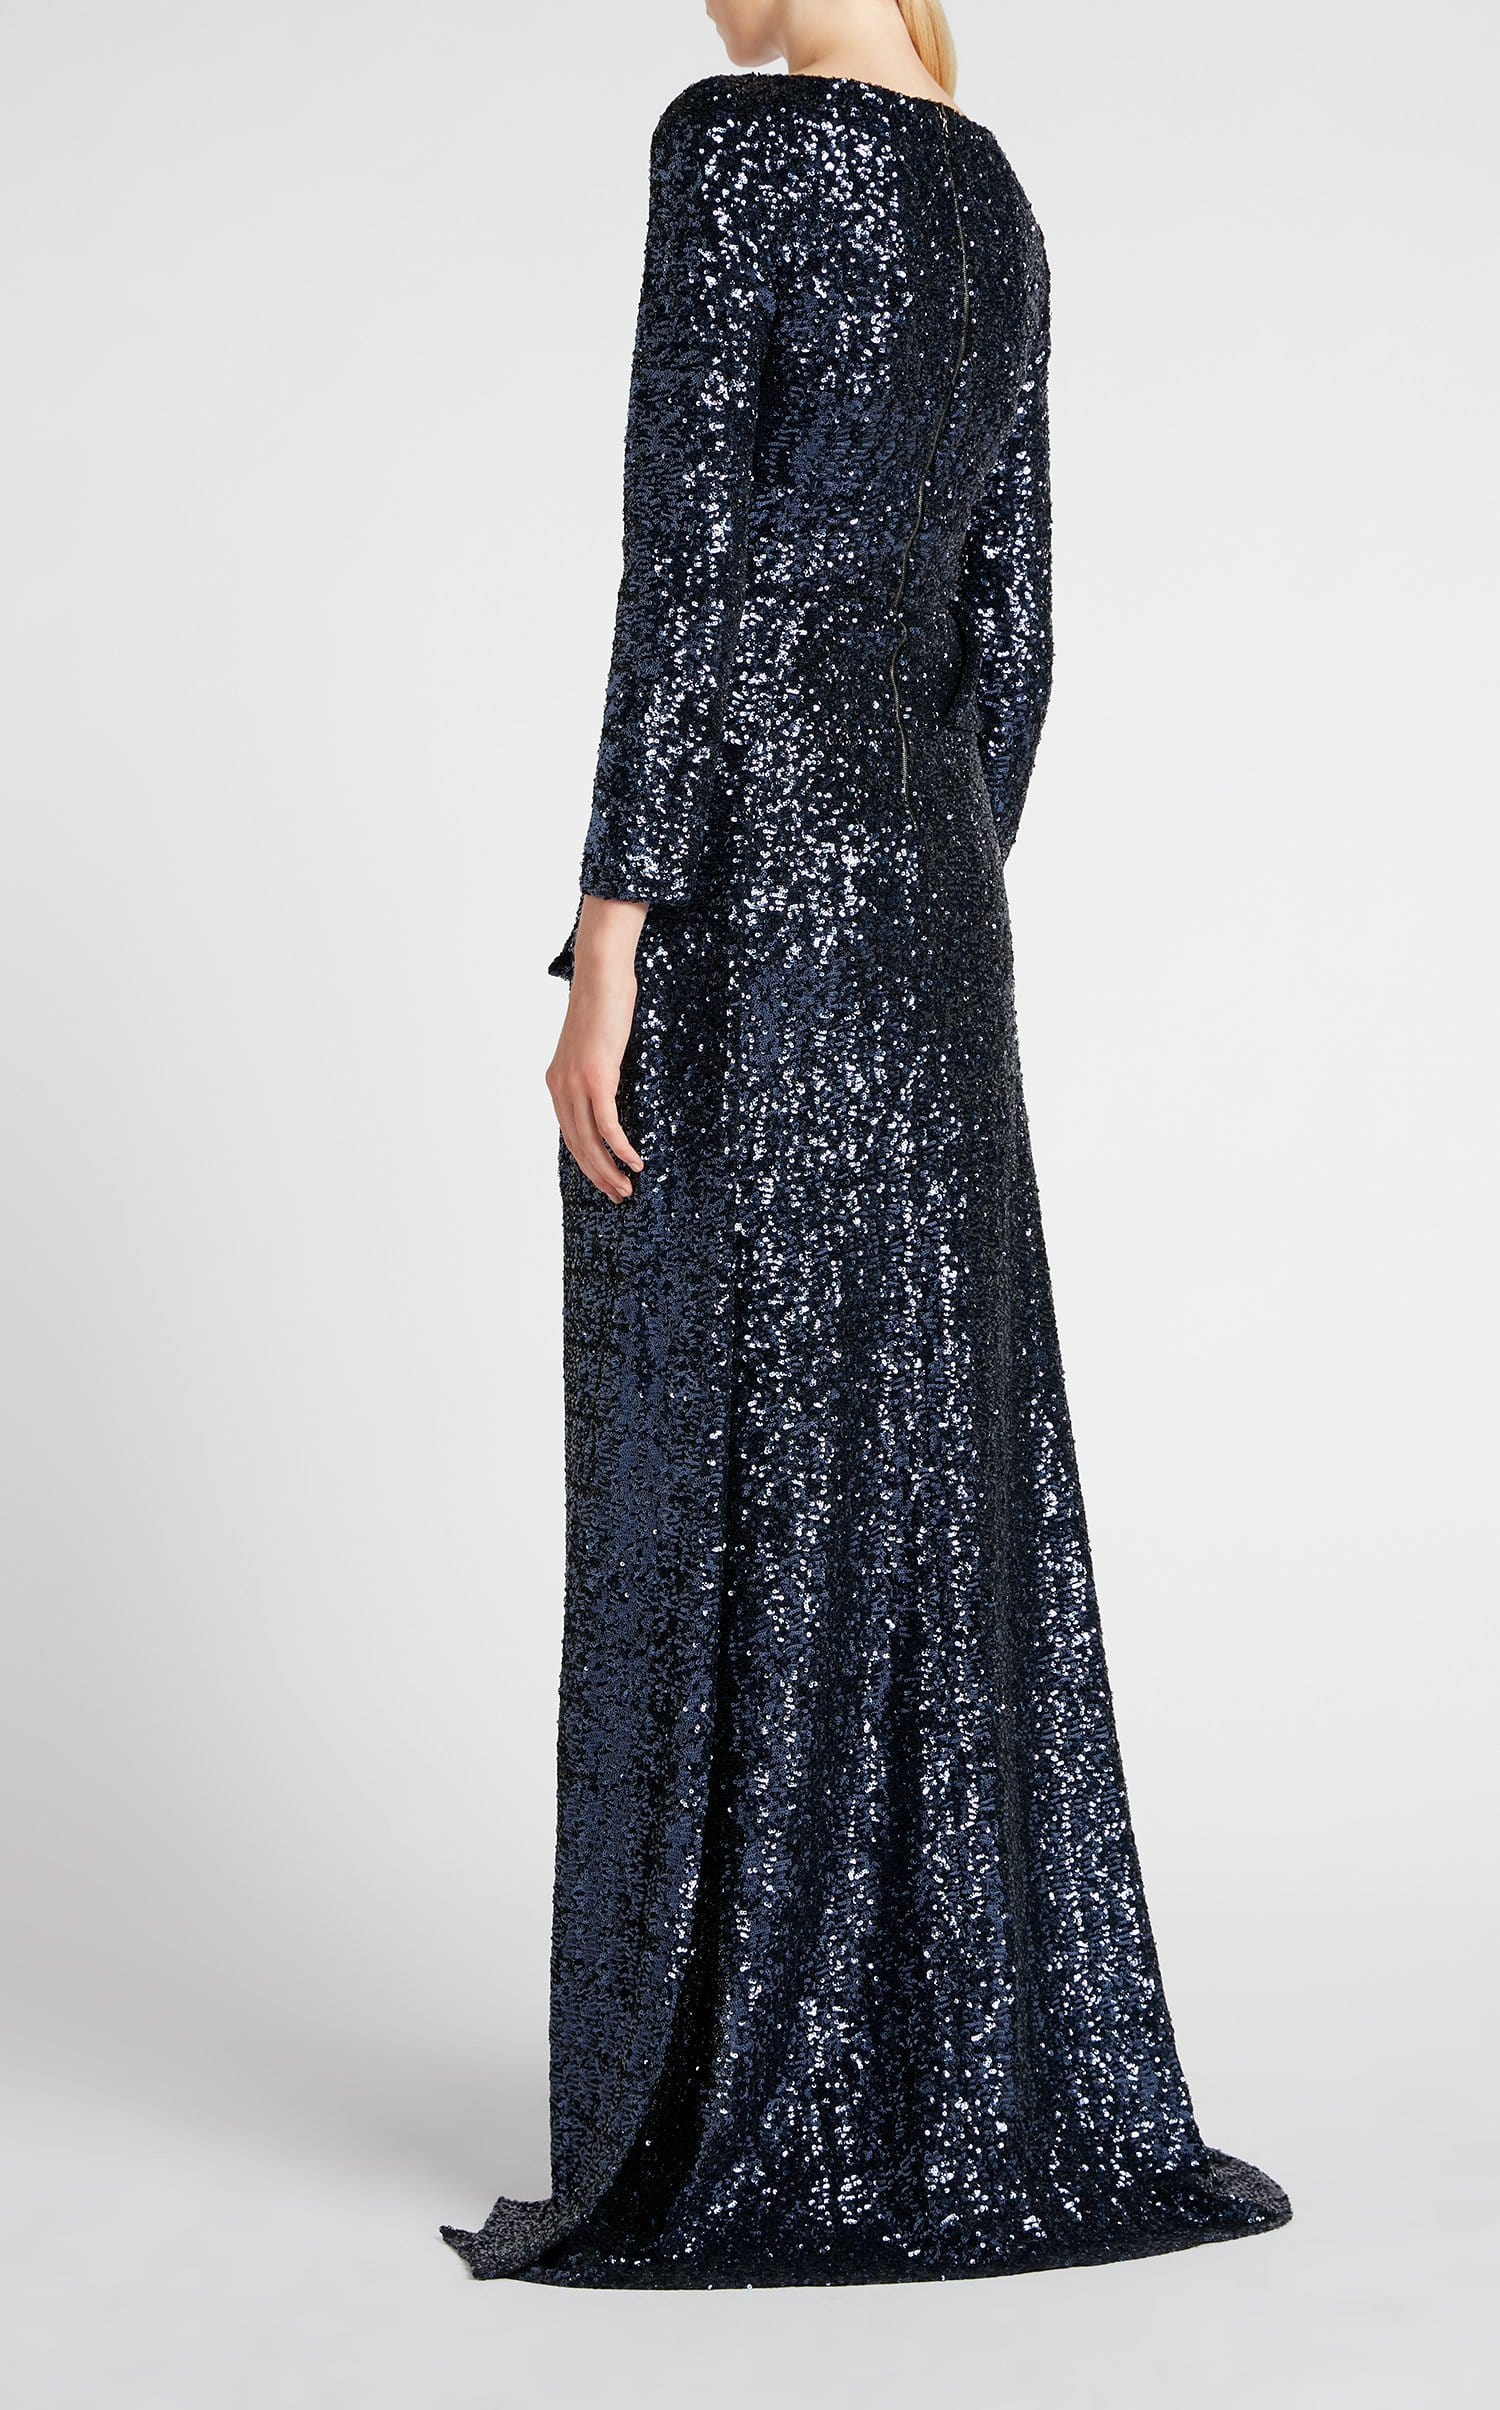 Sarandon Gown In Navy from Roland Mouret